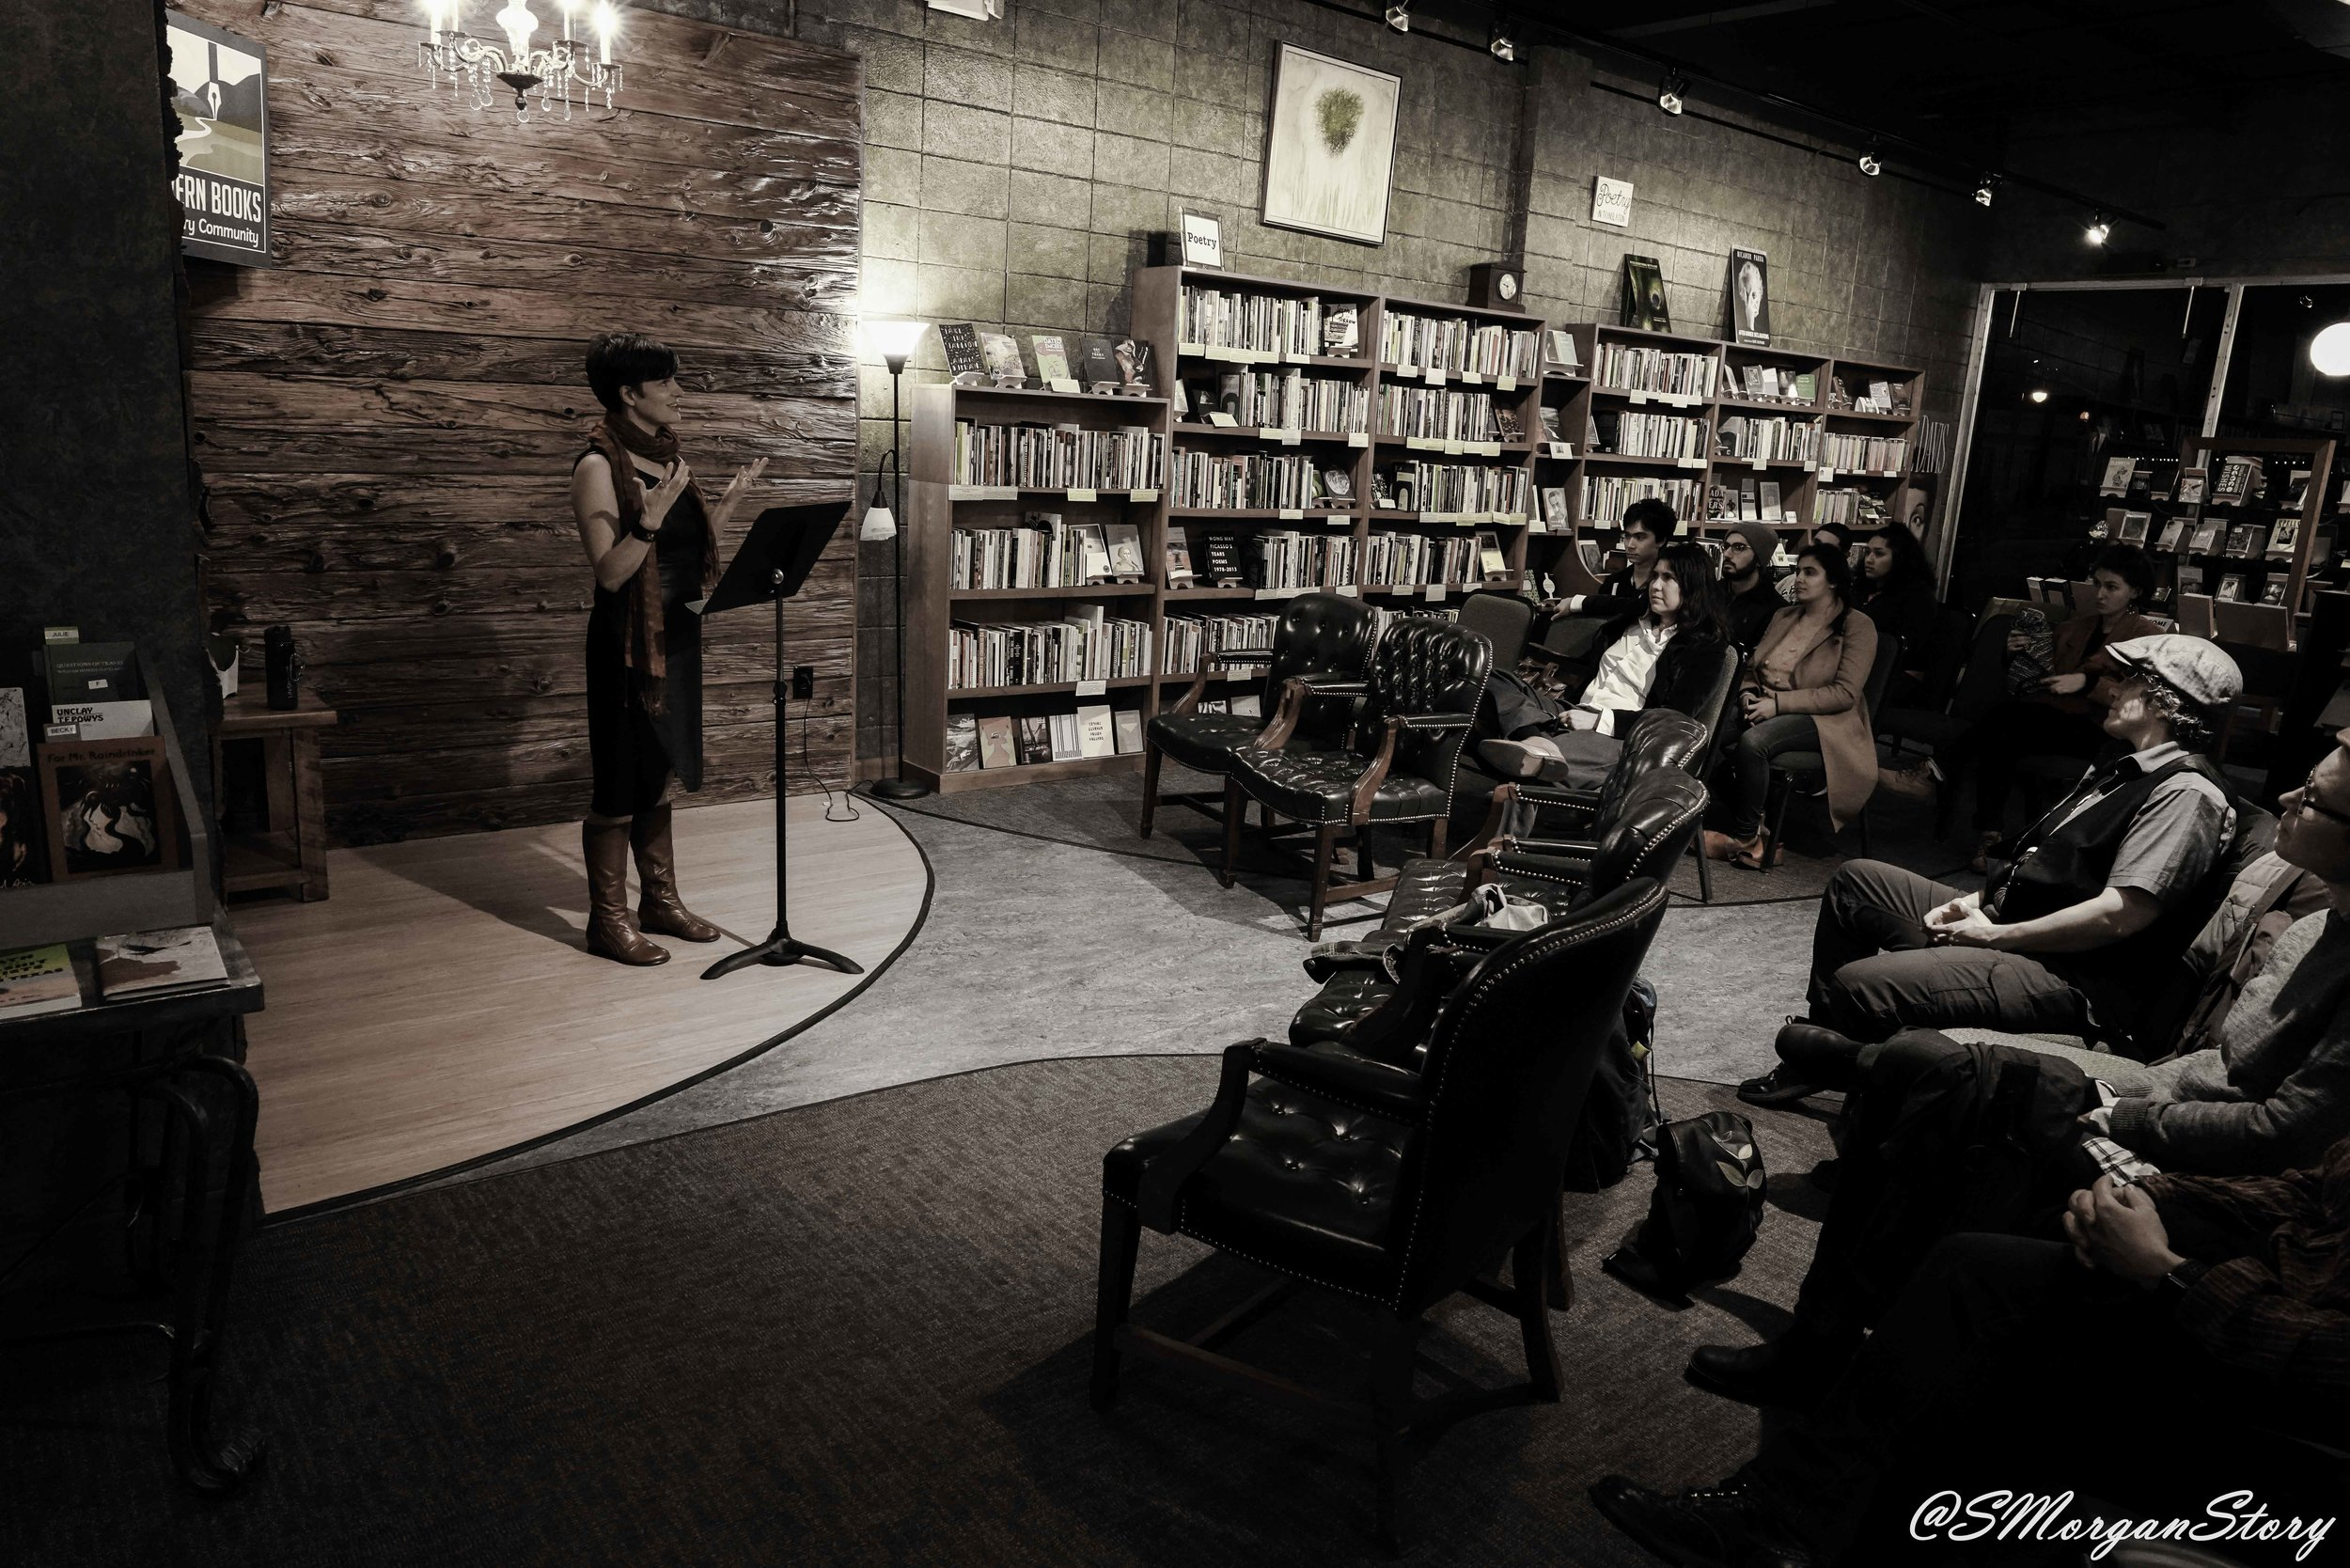 Poet, Allison Cobb, on stage at Malvern Books, March 2019 in Austin Texas.